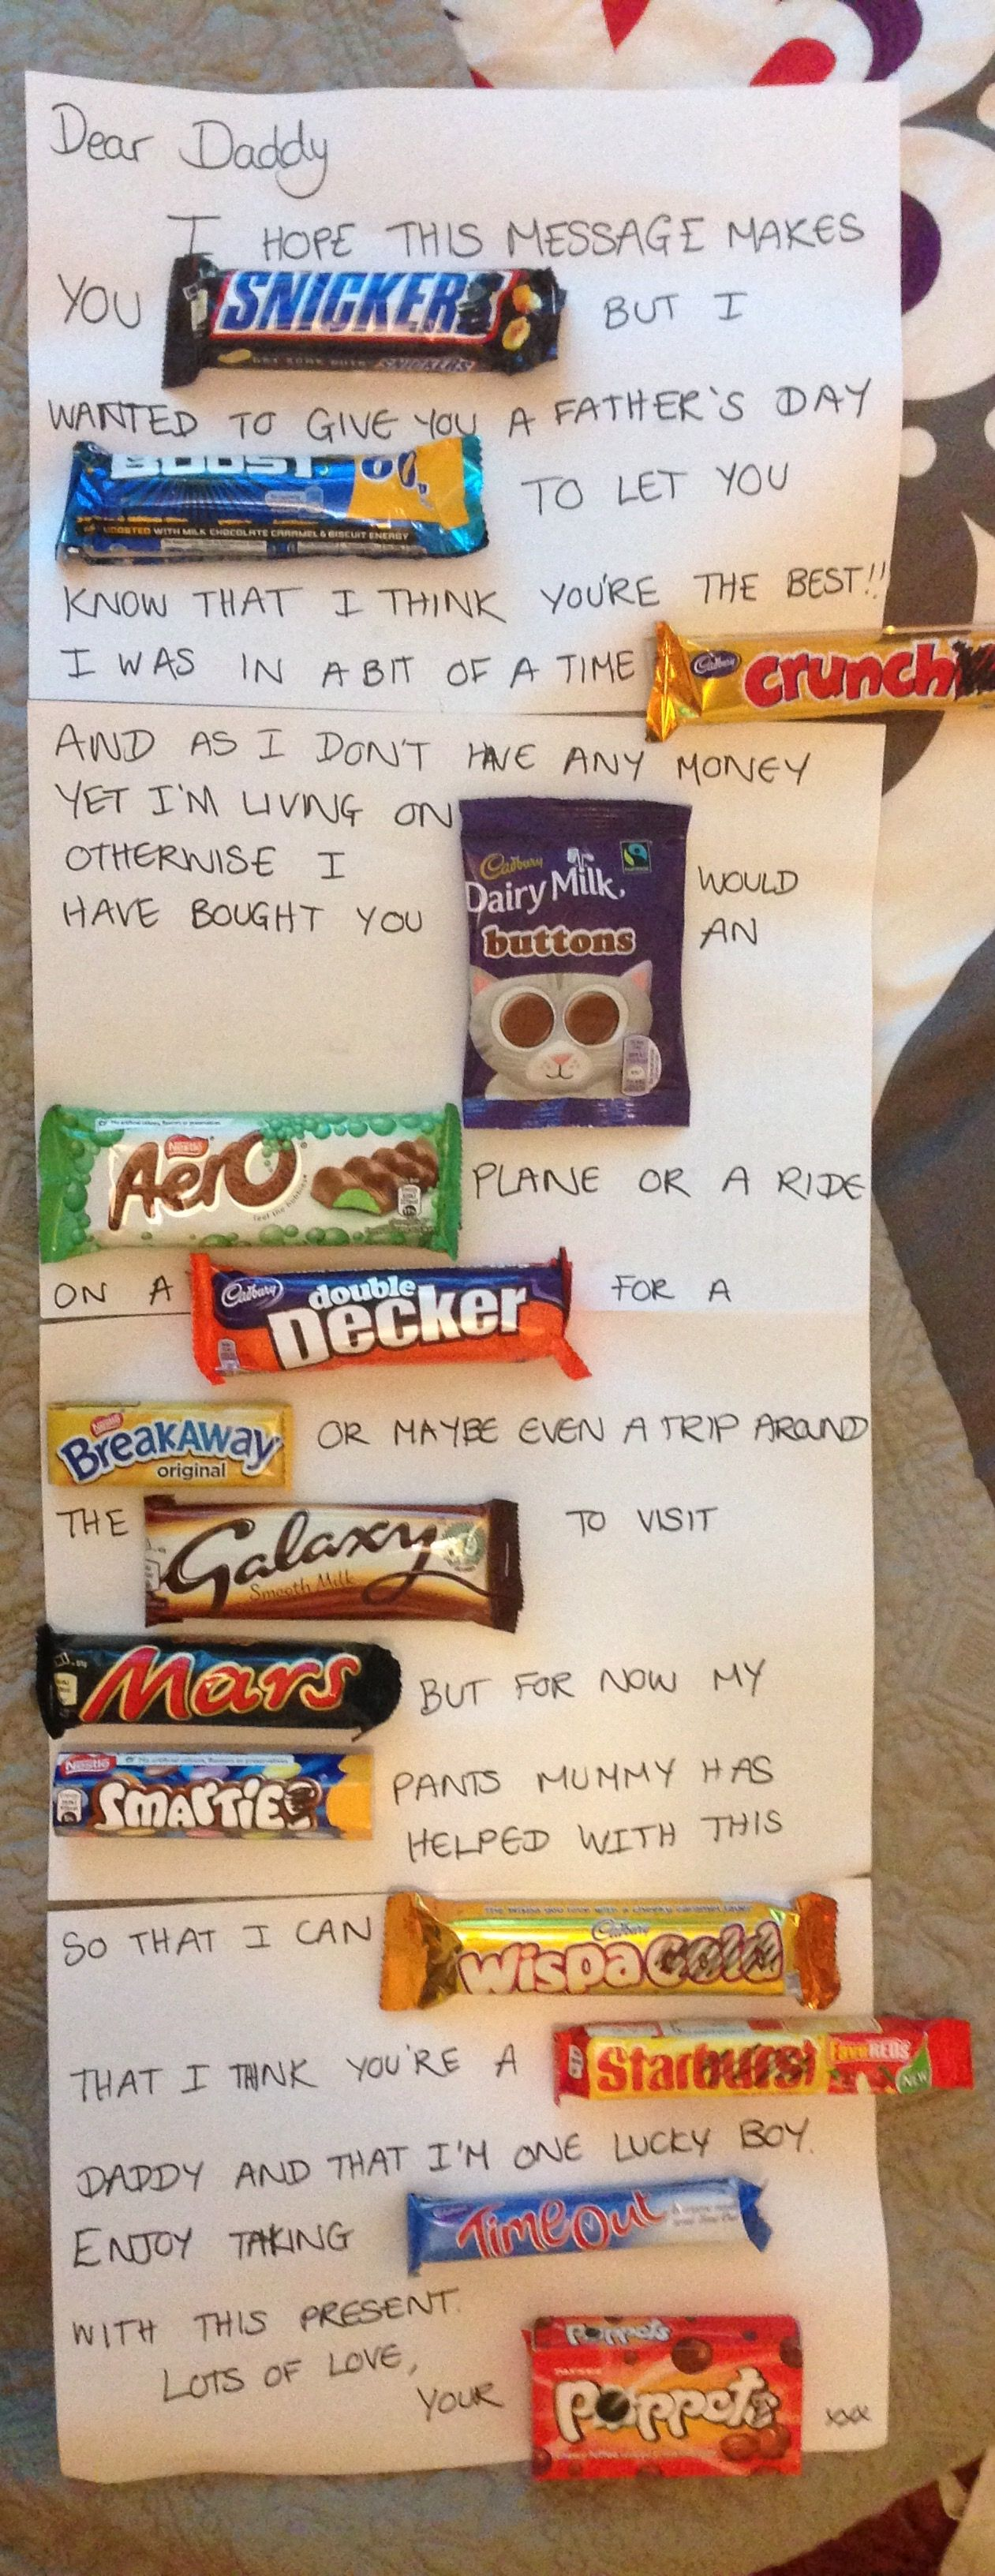 Father/'s Day Gift For Mummy Personalised Letter /& Poem to Mummy on Fathers Day